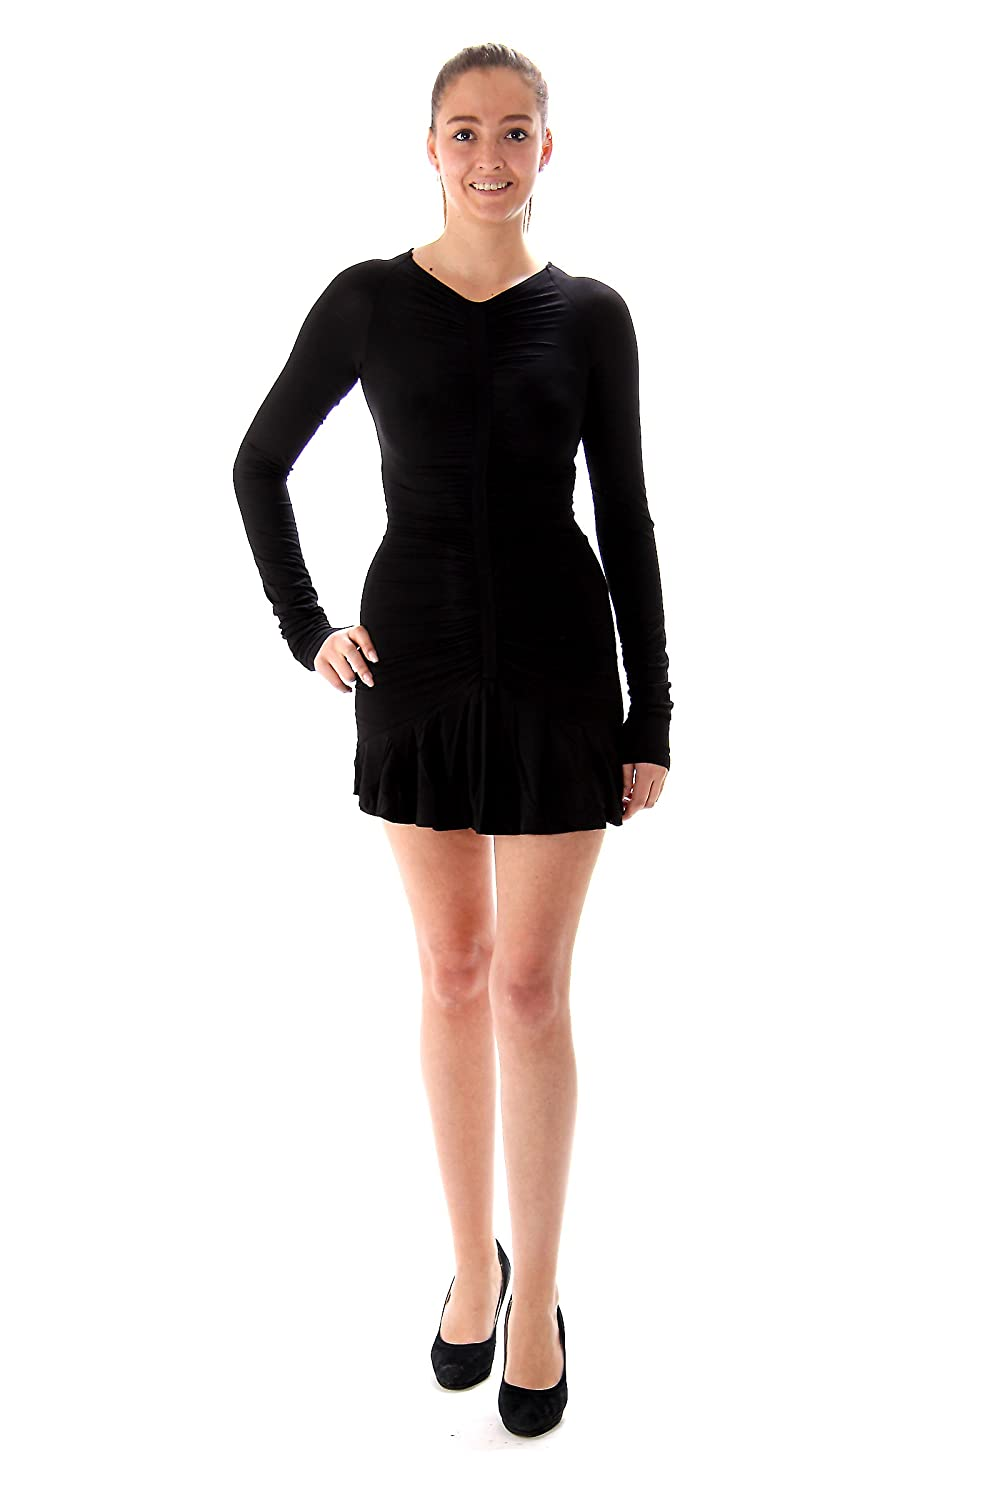 Balmain Pierre Ladies Dress Size 44 Black (IT)